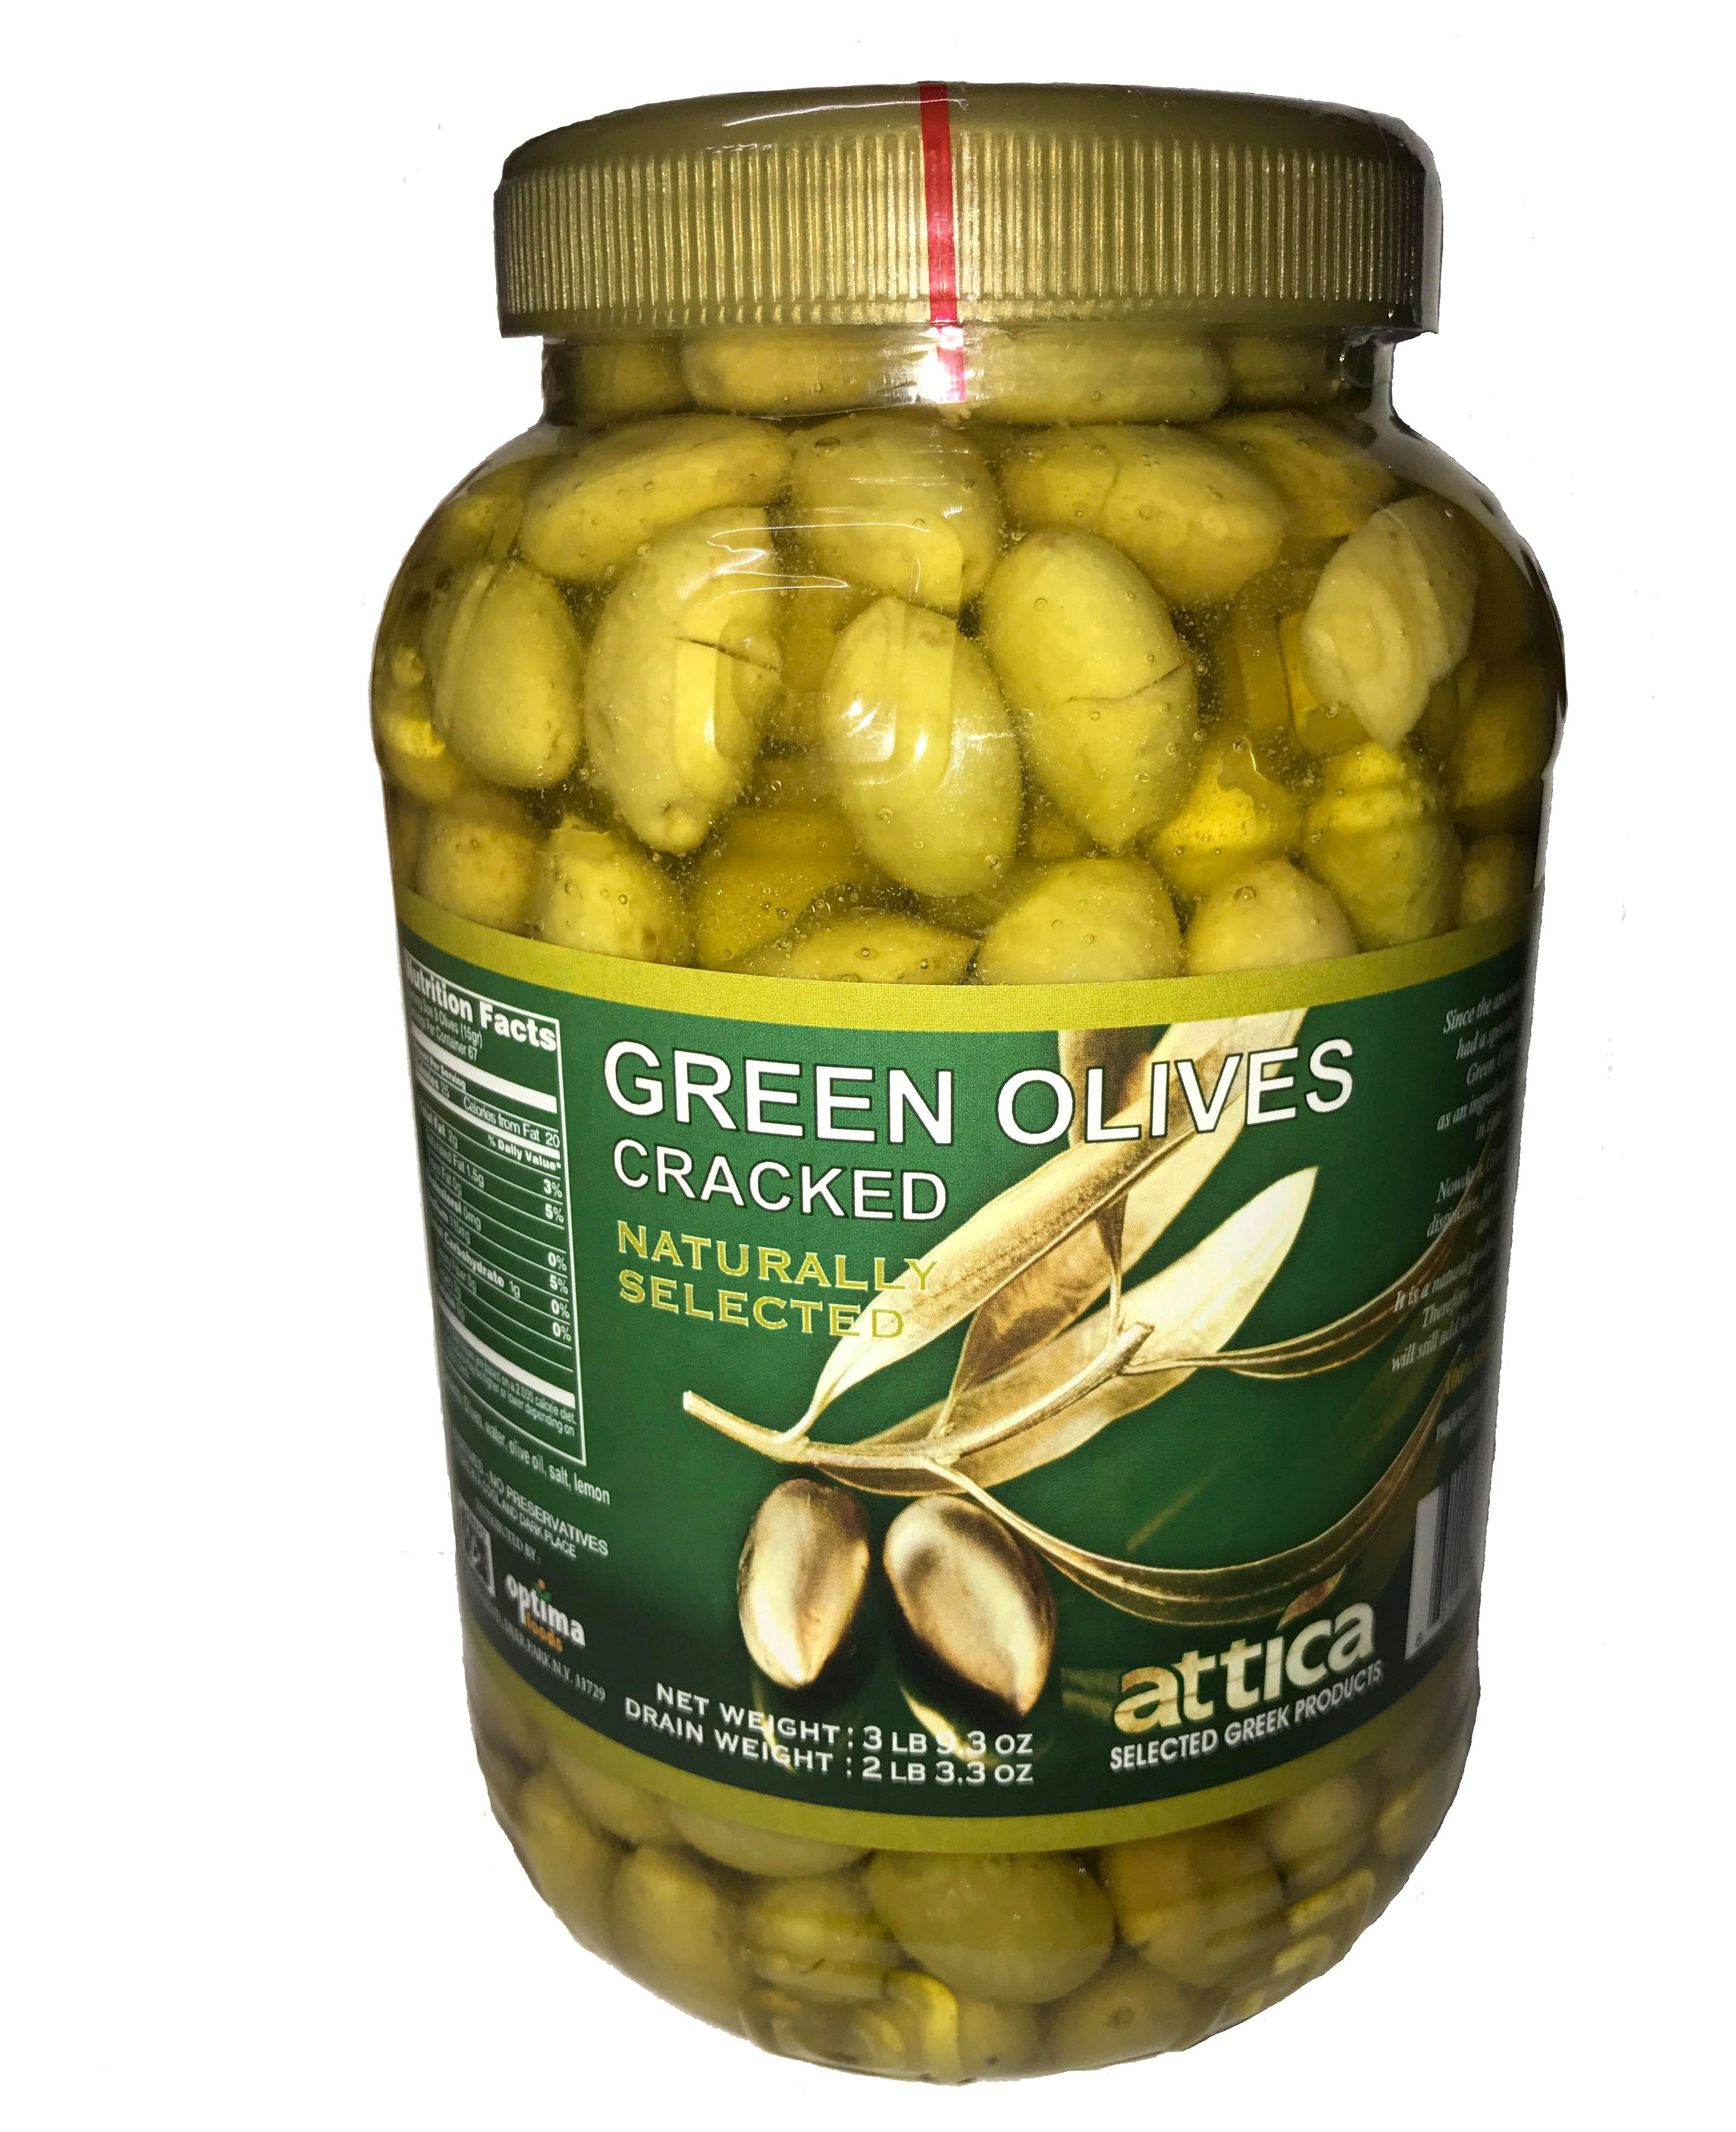 ATTICA Green Olives Cracked 3,58 Lbs by ATTICA